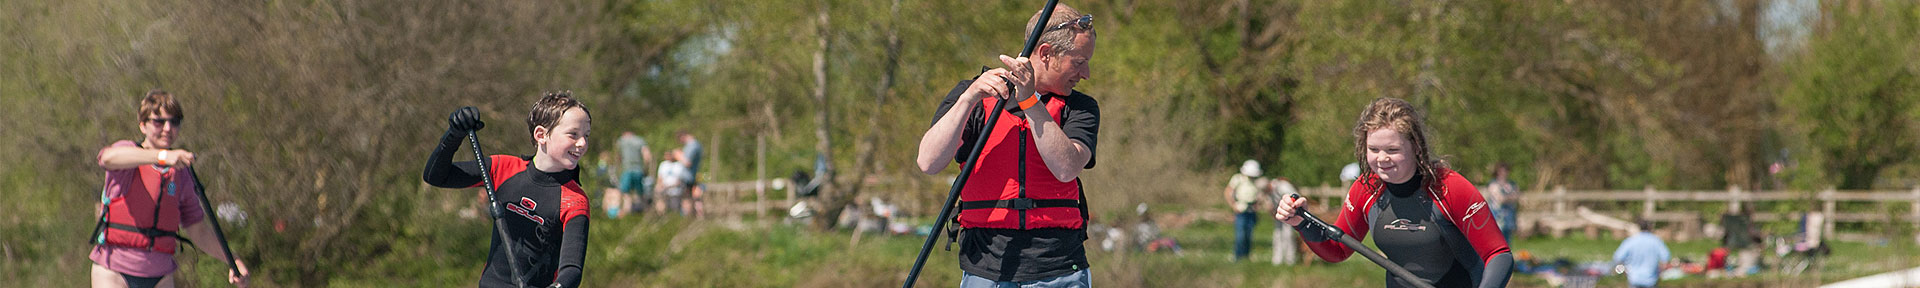 Stand up paddleboard hire in the Cotswolds